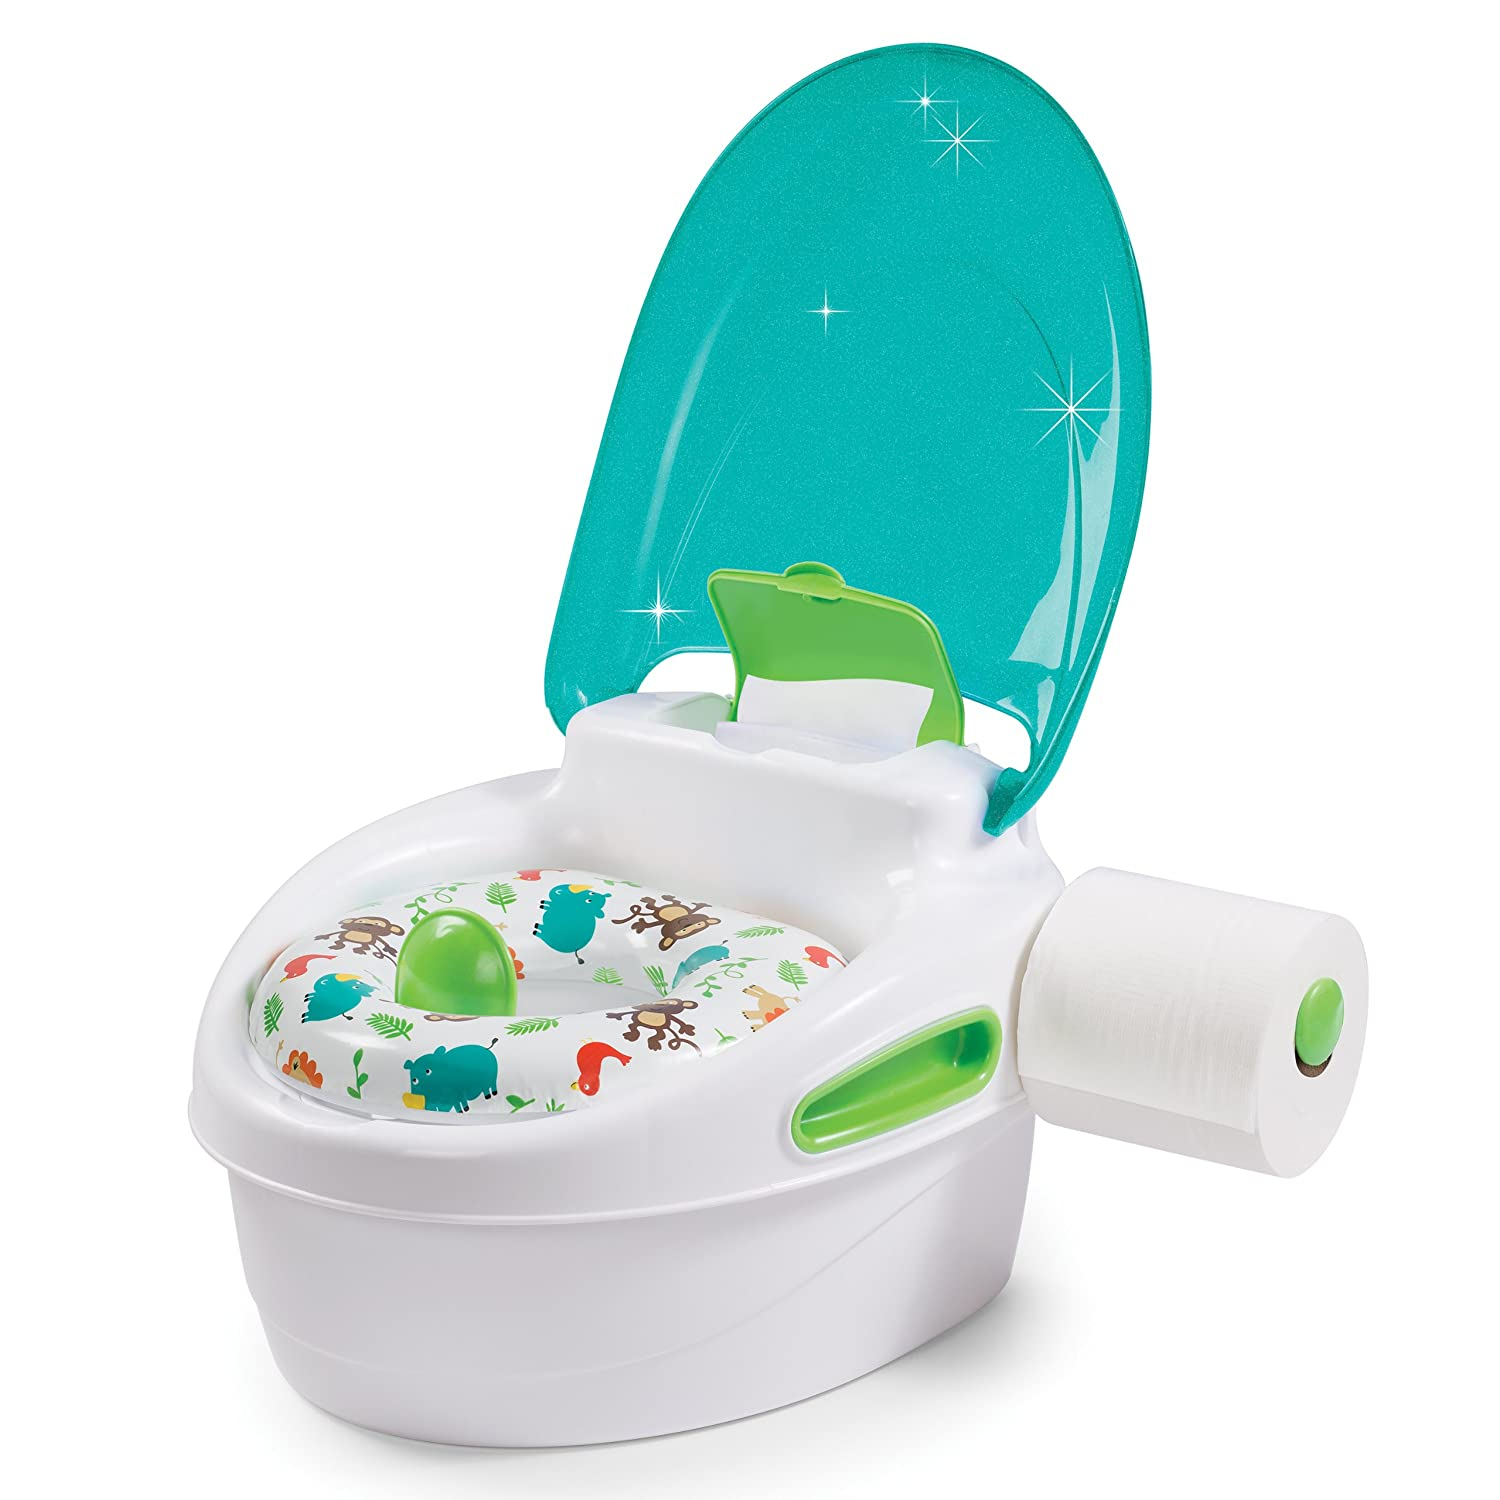 Piscina Plastico Duro Toilet Pee Trainer Chair Training Seat Potty Toddler Baby